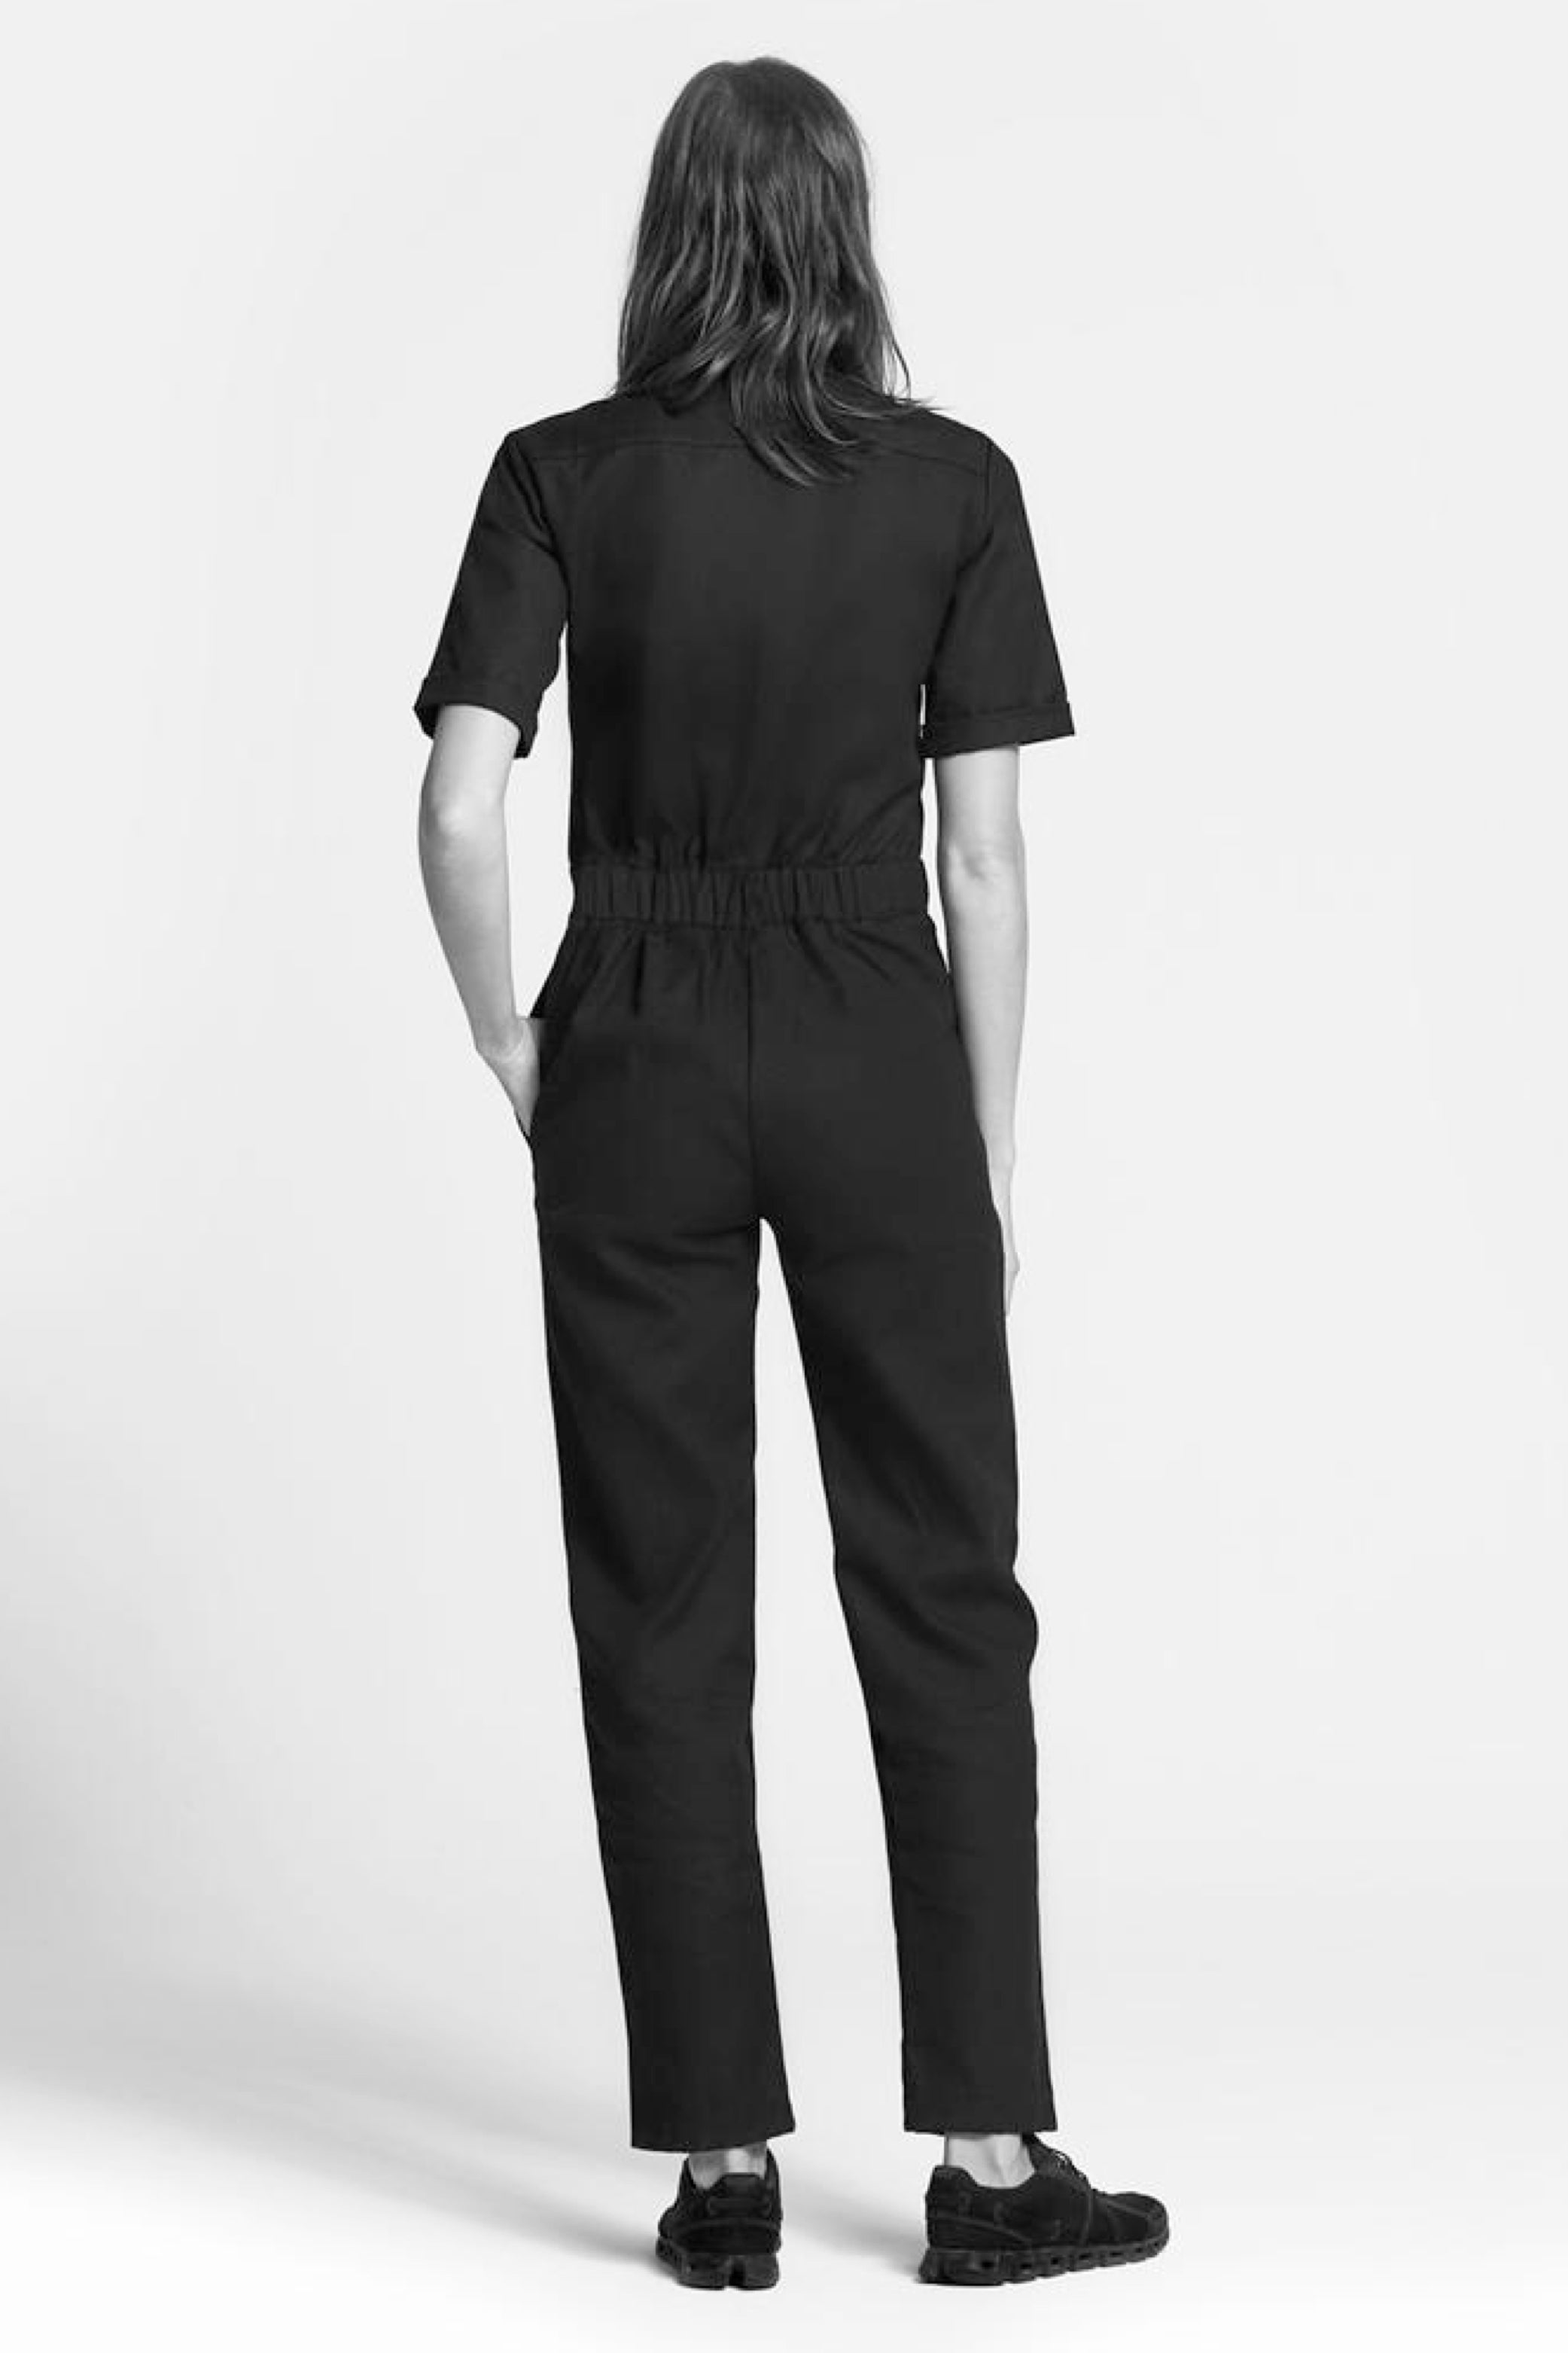 Mrs Black Jumpsuit